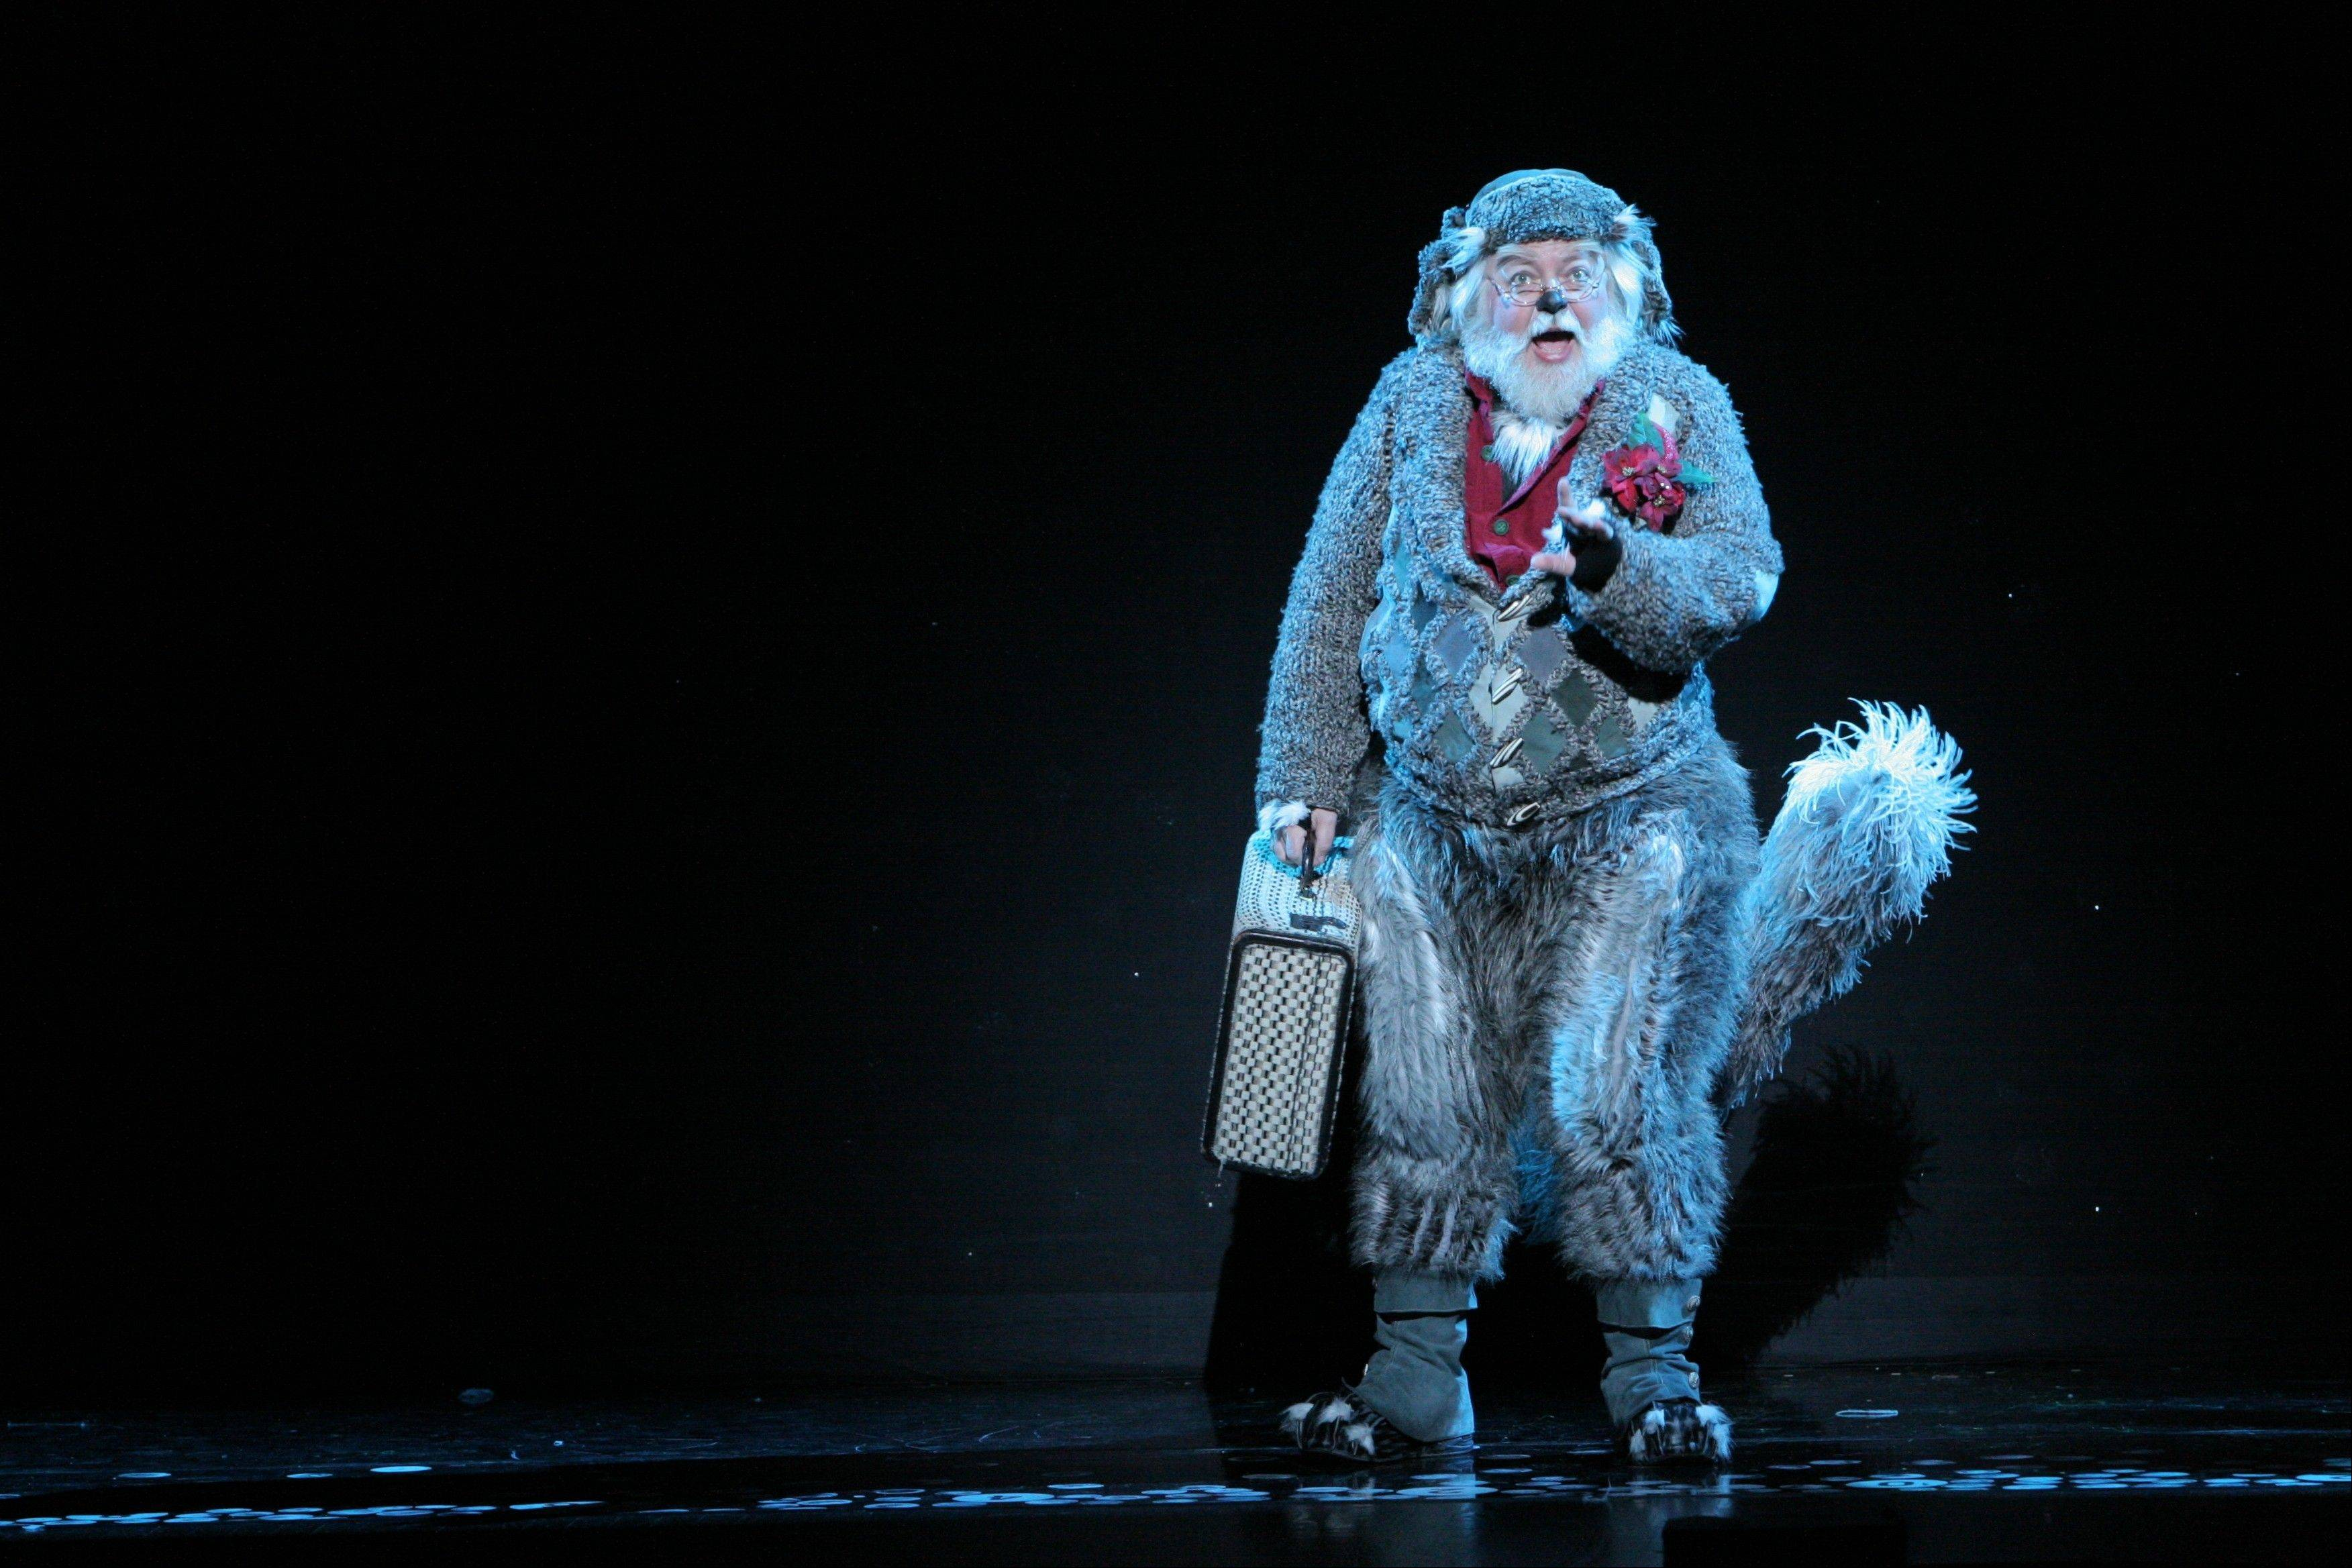 Old Max (Bob Lauder) narrates the Grinch's tale (and condemns his flaws) in the musical adaptation of Theodor Seuss Geisel's beloved book.